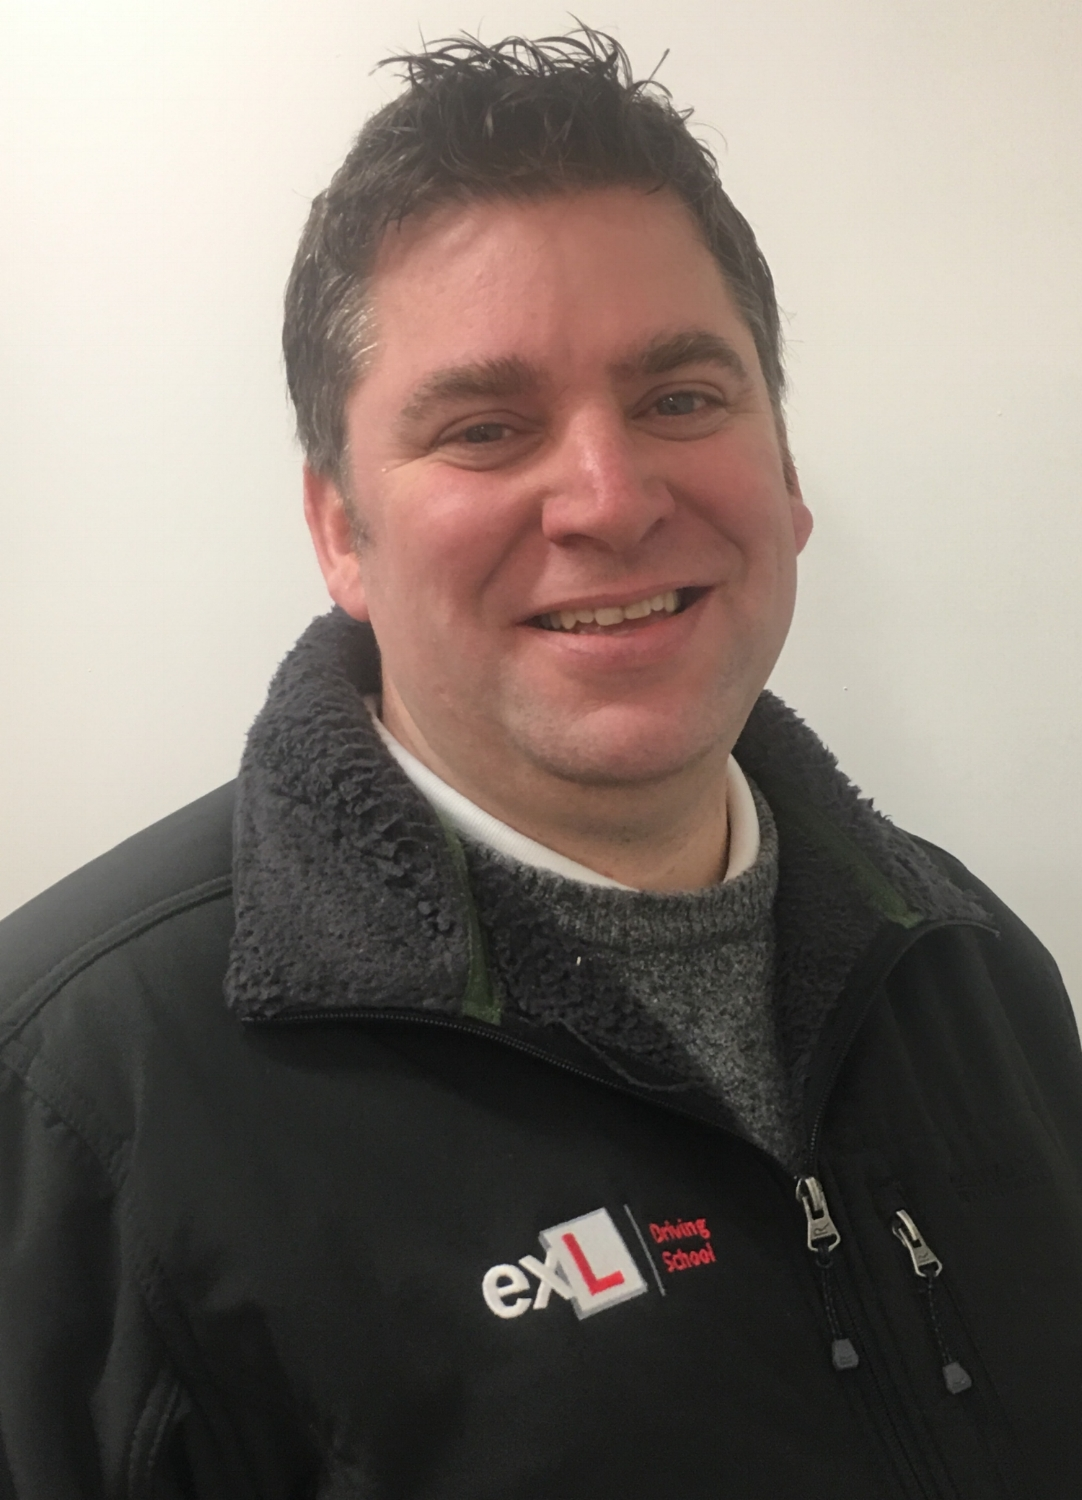 Peter - Peter is the founder and owner of EXL Driving School and has been an Instructor for over 10 years. As well as teaching learners, Peter trains people to become Instructors. and takes an active role in the development of Instructors within the company.